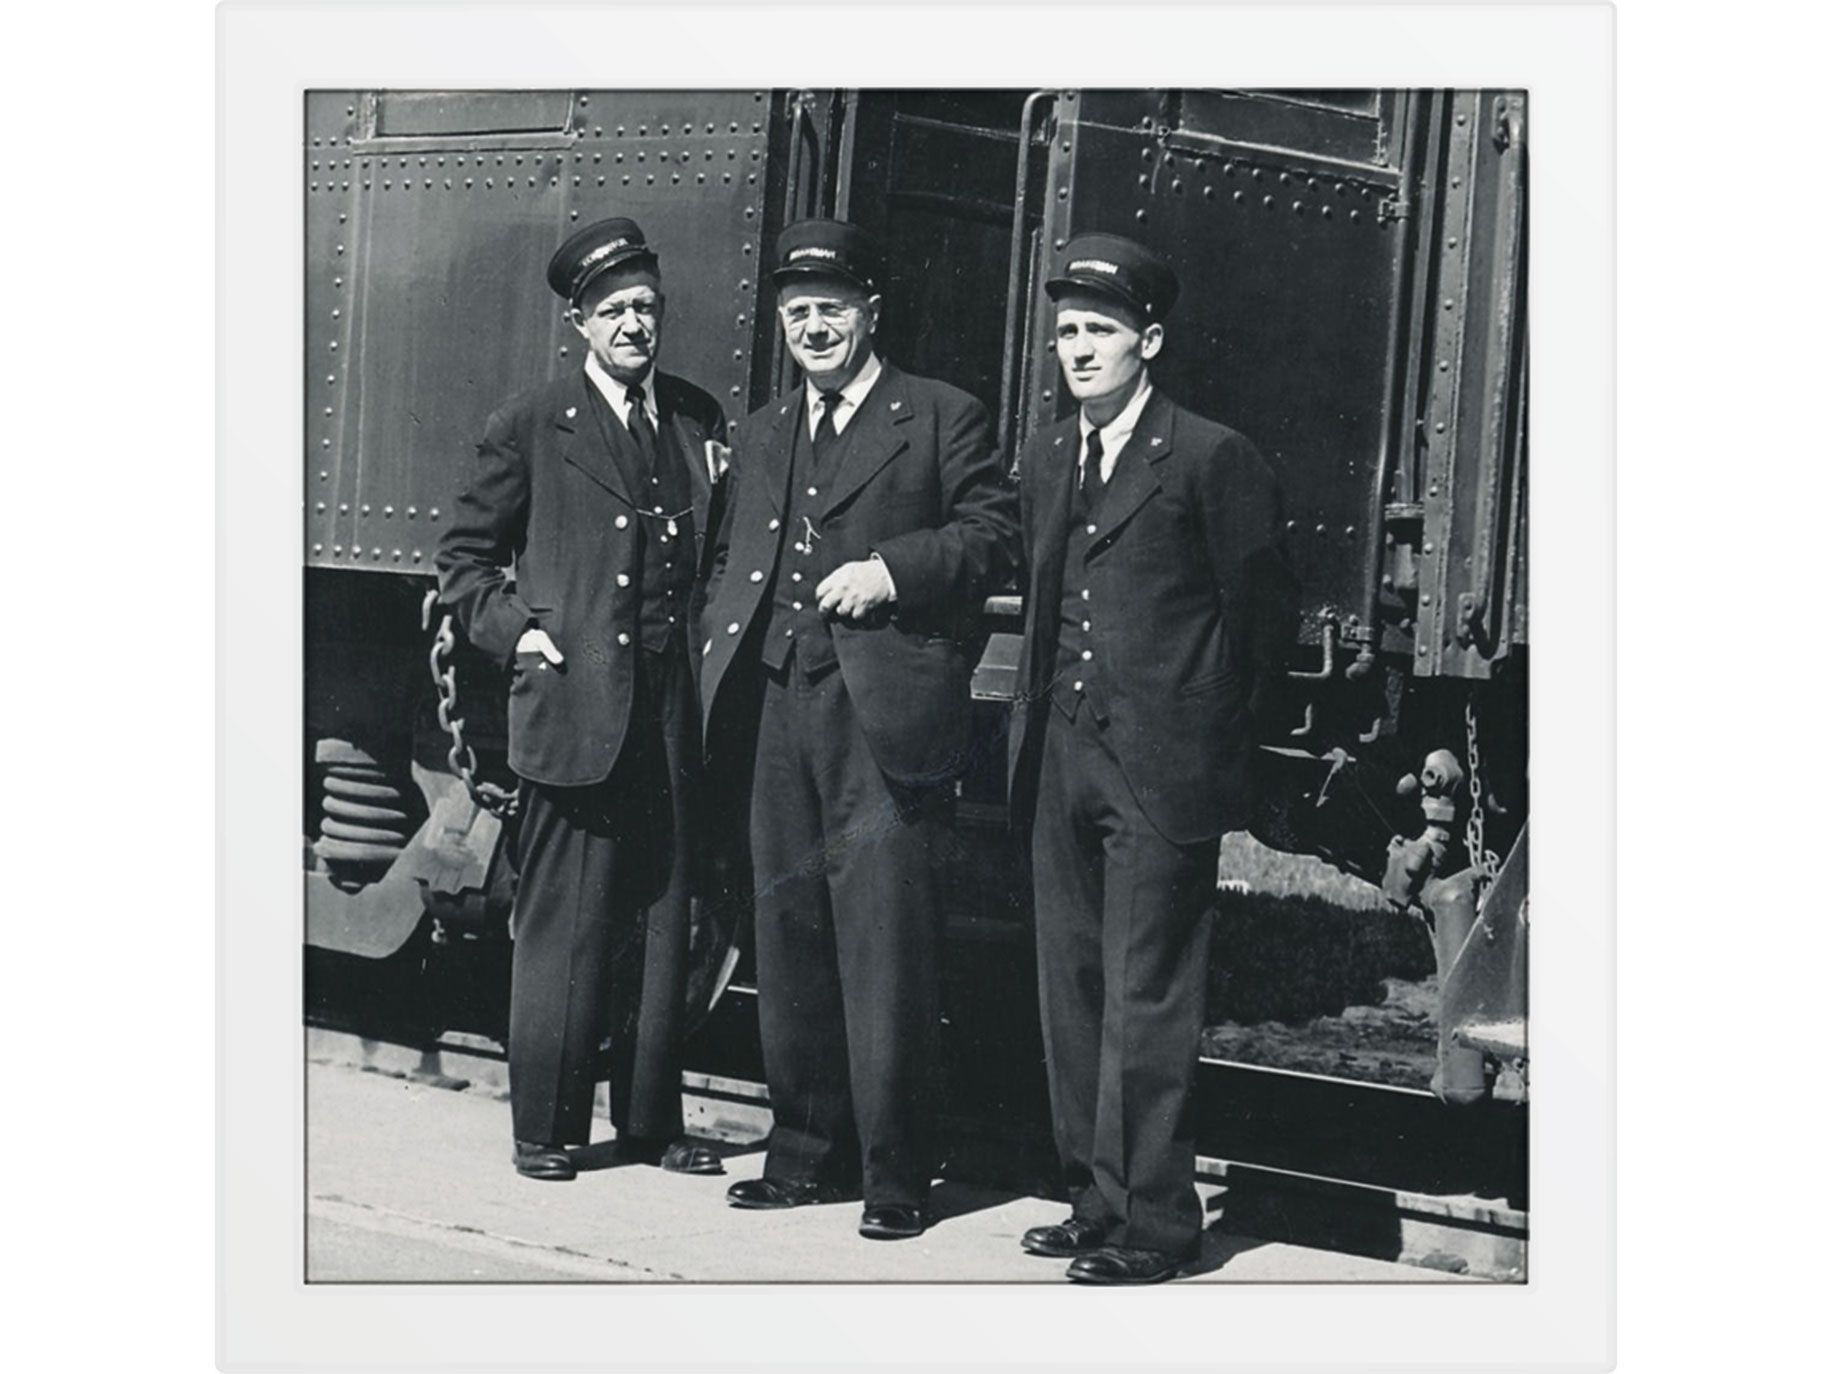 Cassady worked for many years as a brakeman for Southern Pacific Railroad.